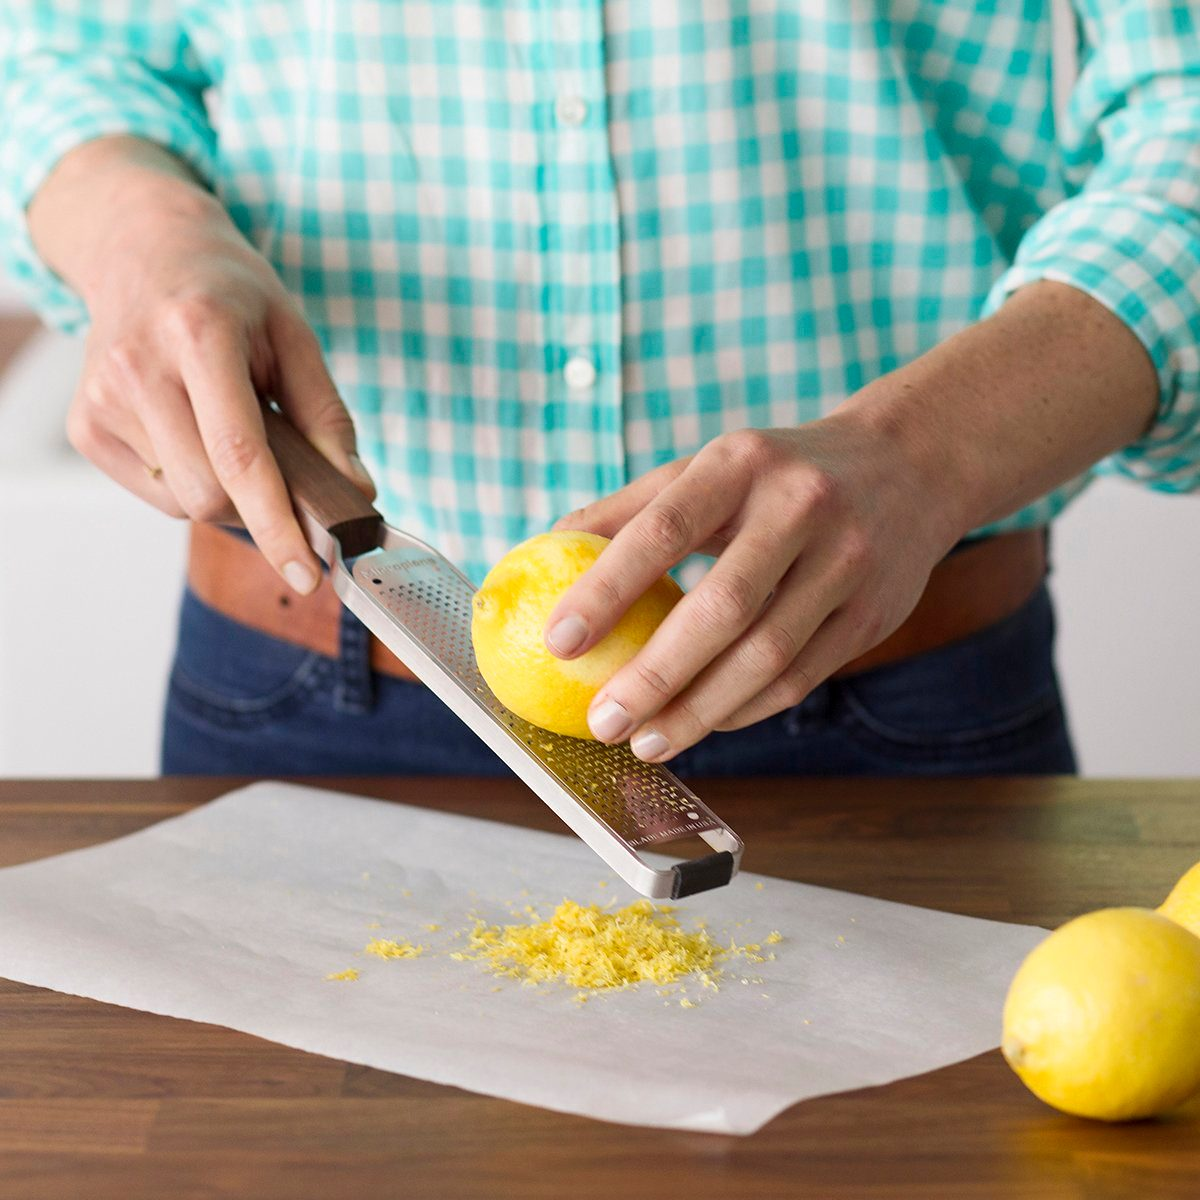 Person using a microplane to zest a lemon